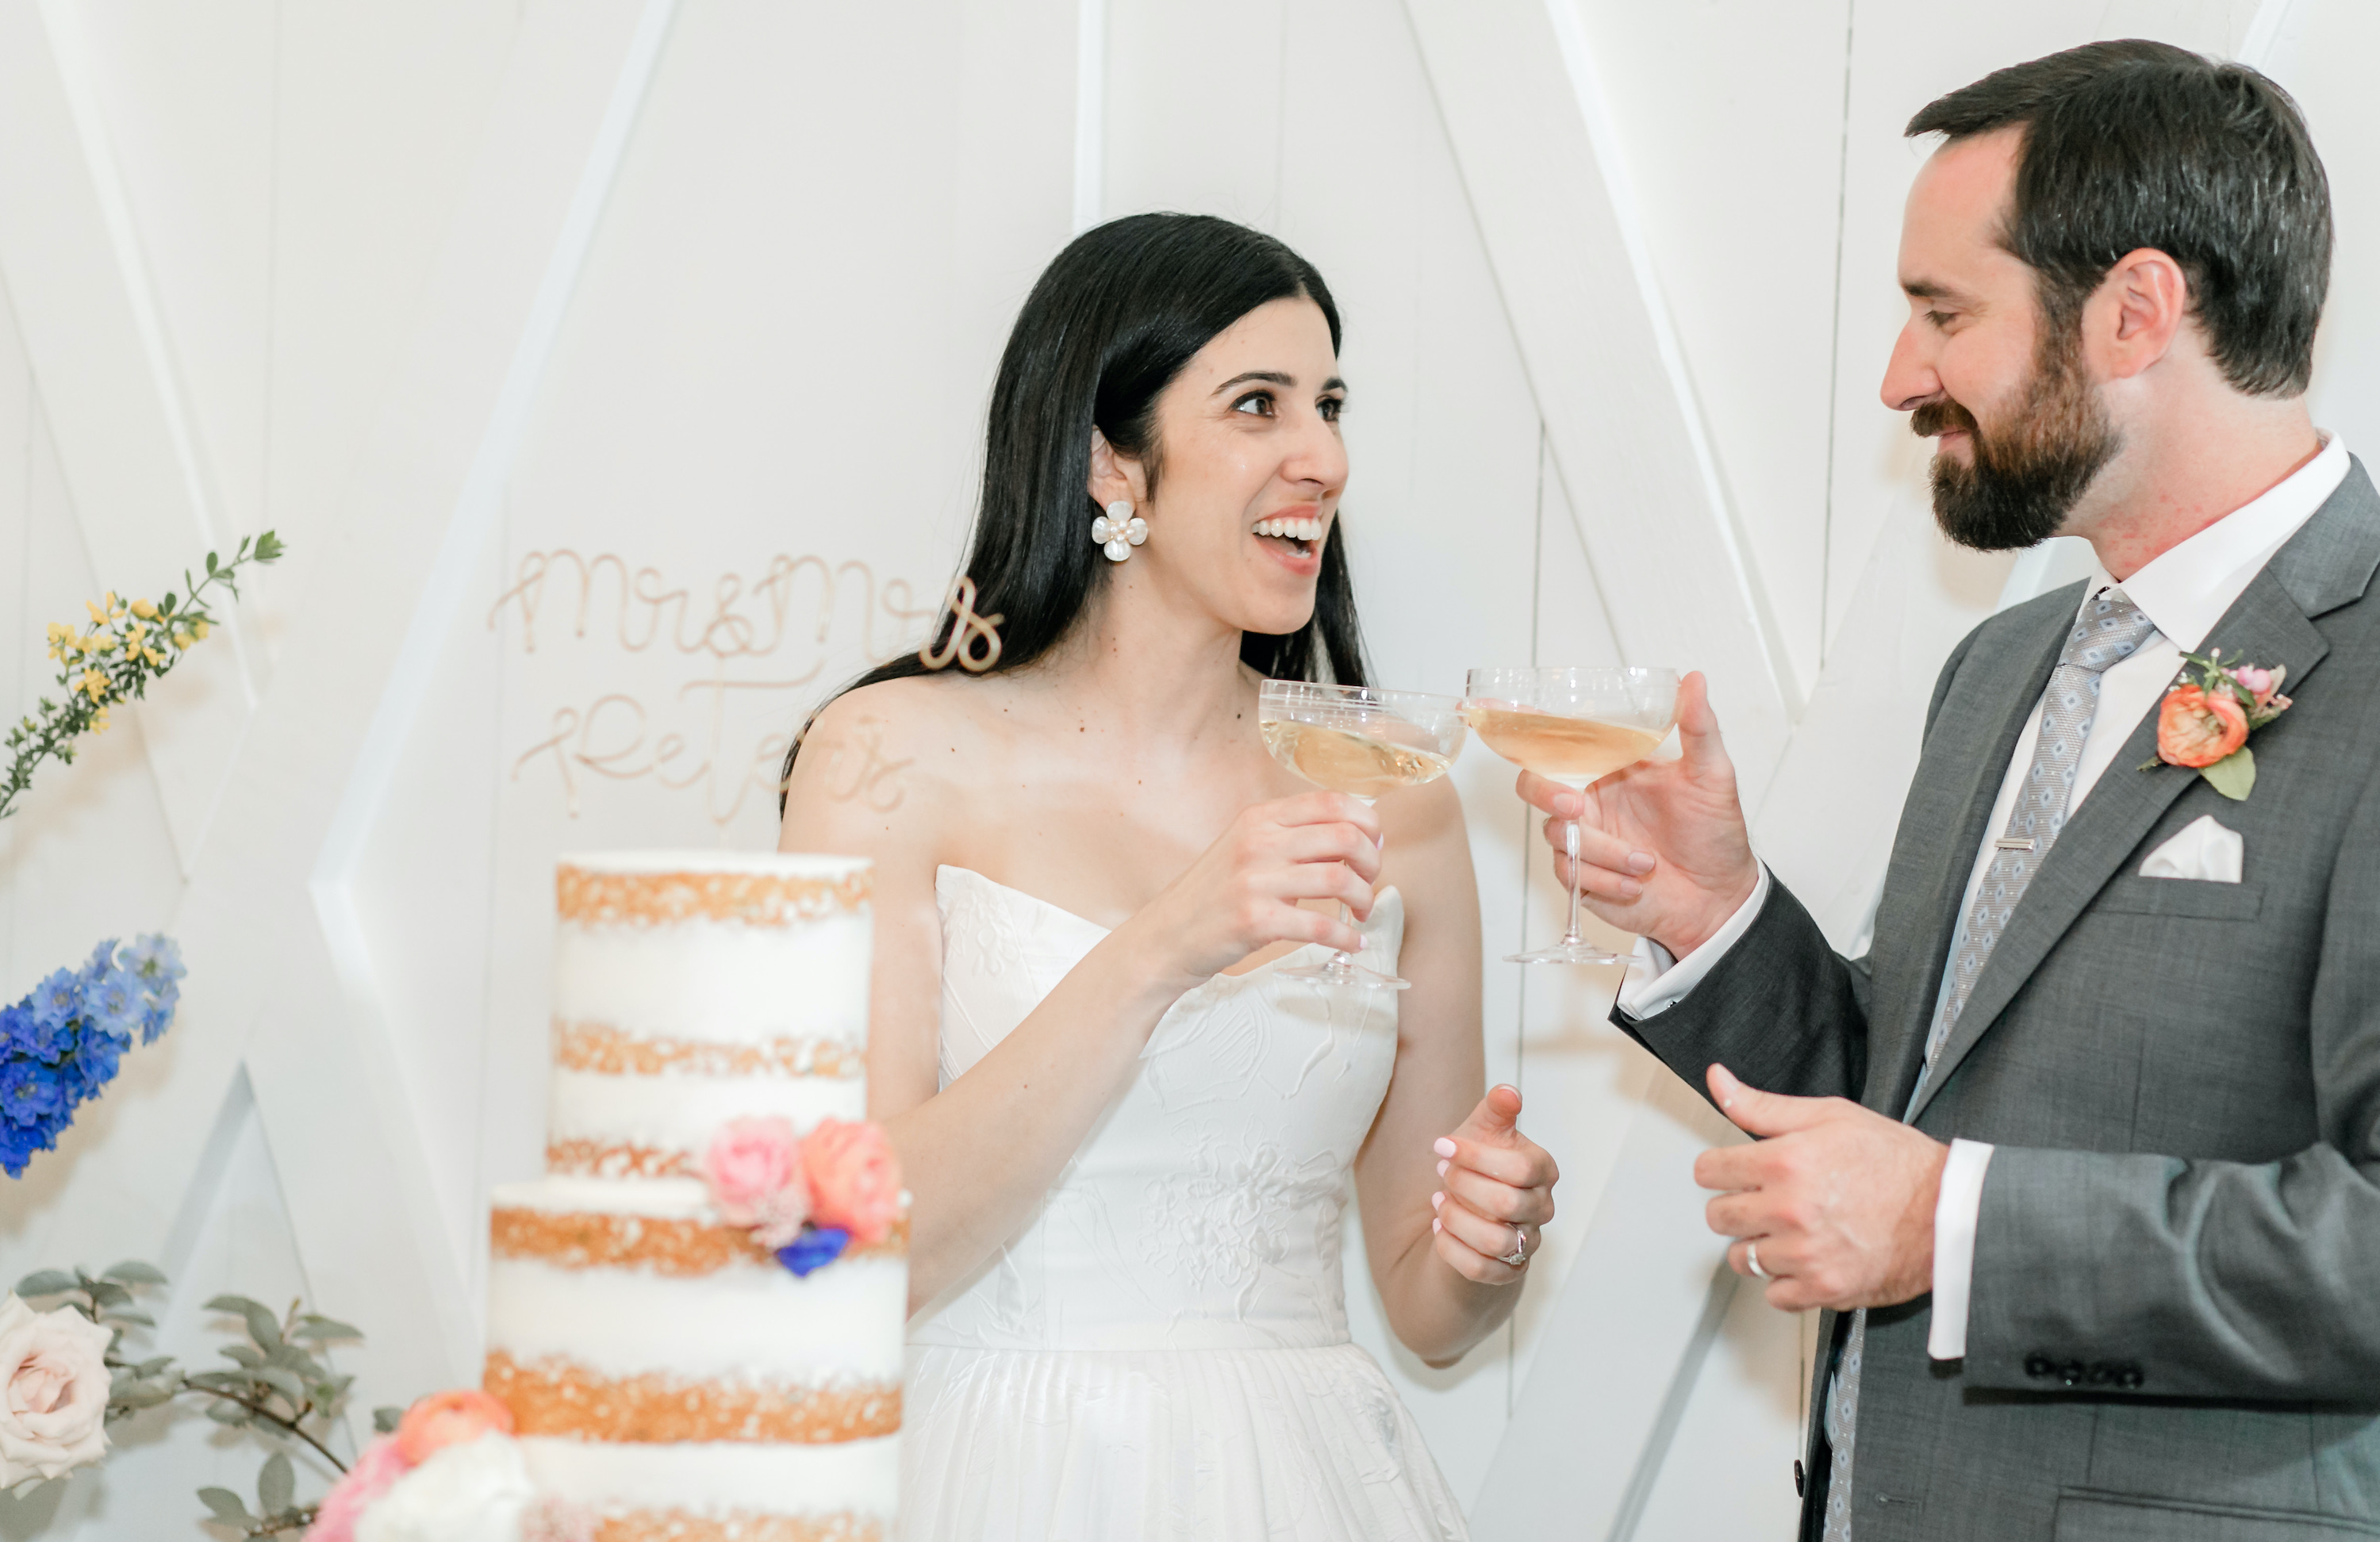 The bride smiles at the groom as they cheers glasses by their wedding cake.